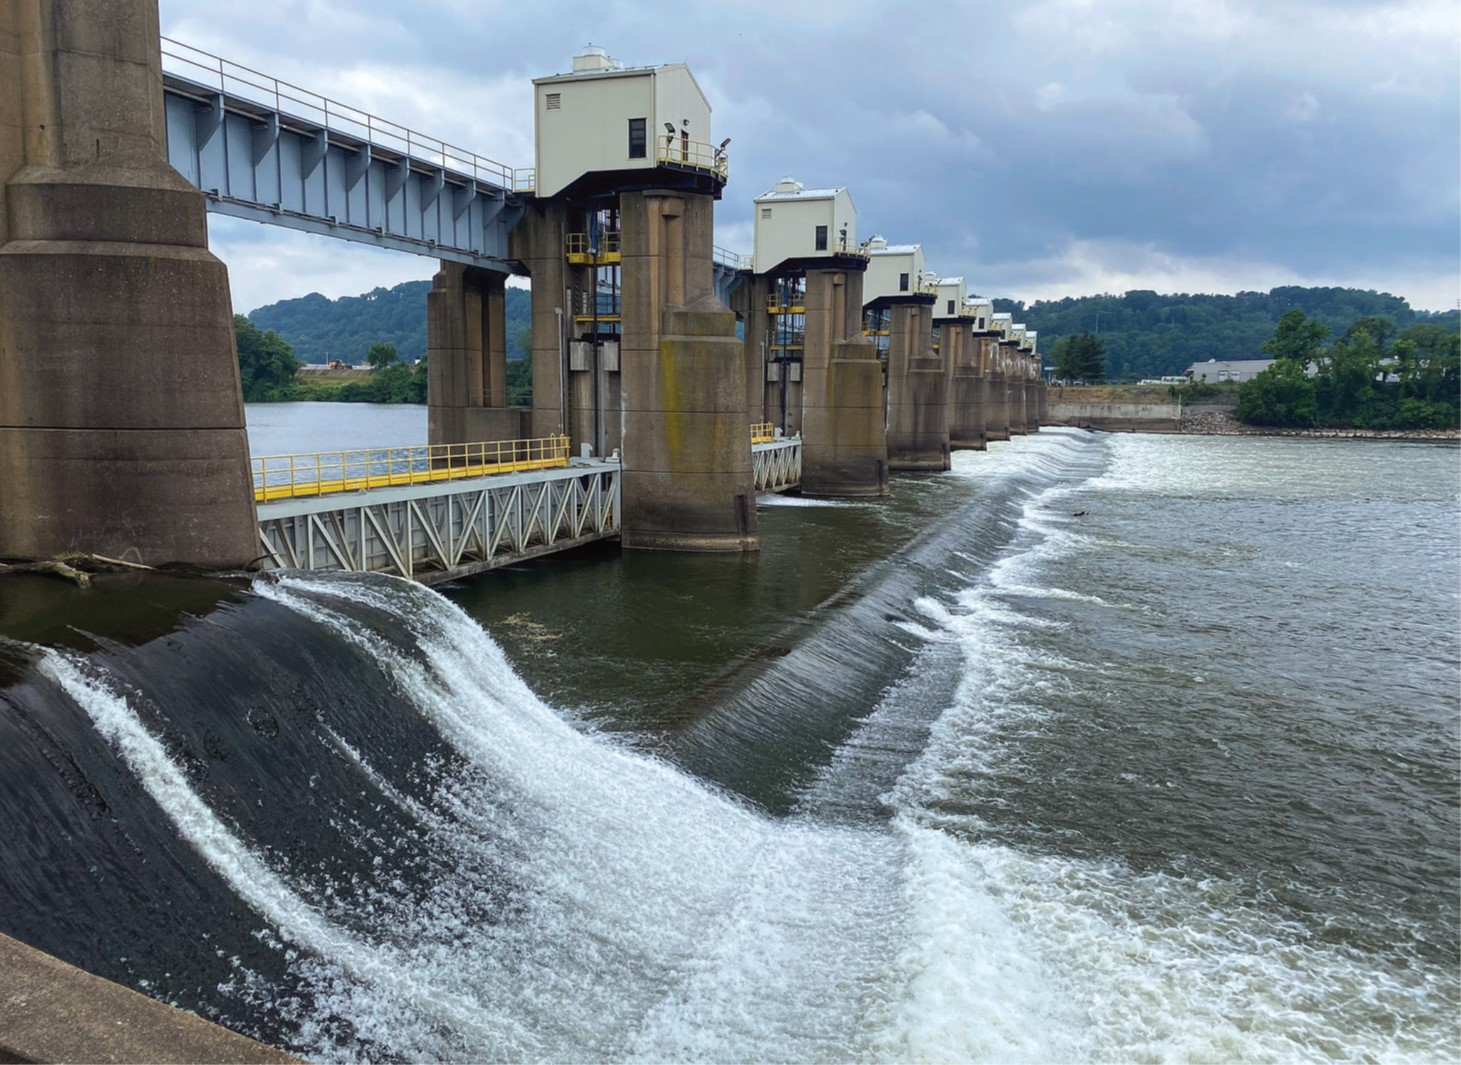 —photo by Carol Vernon, Pittsburgh Engineer District The main chamber at Emsworth Locks and Dam will be closed from August 31 to November 13.